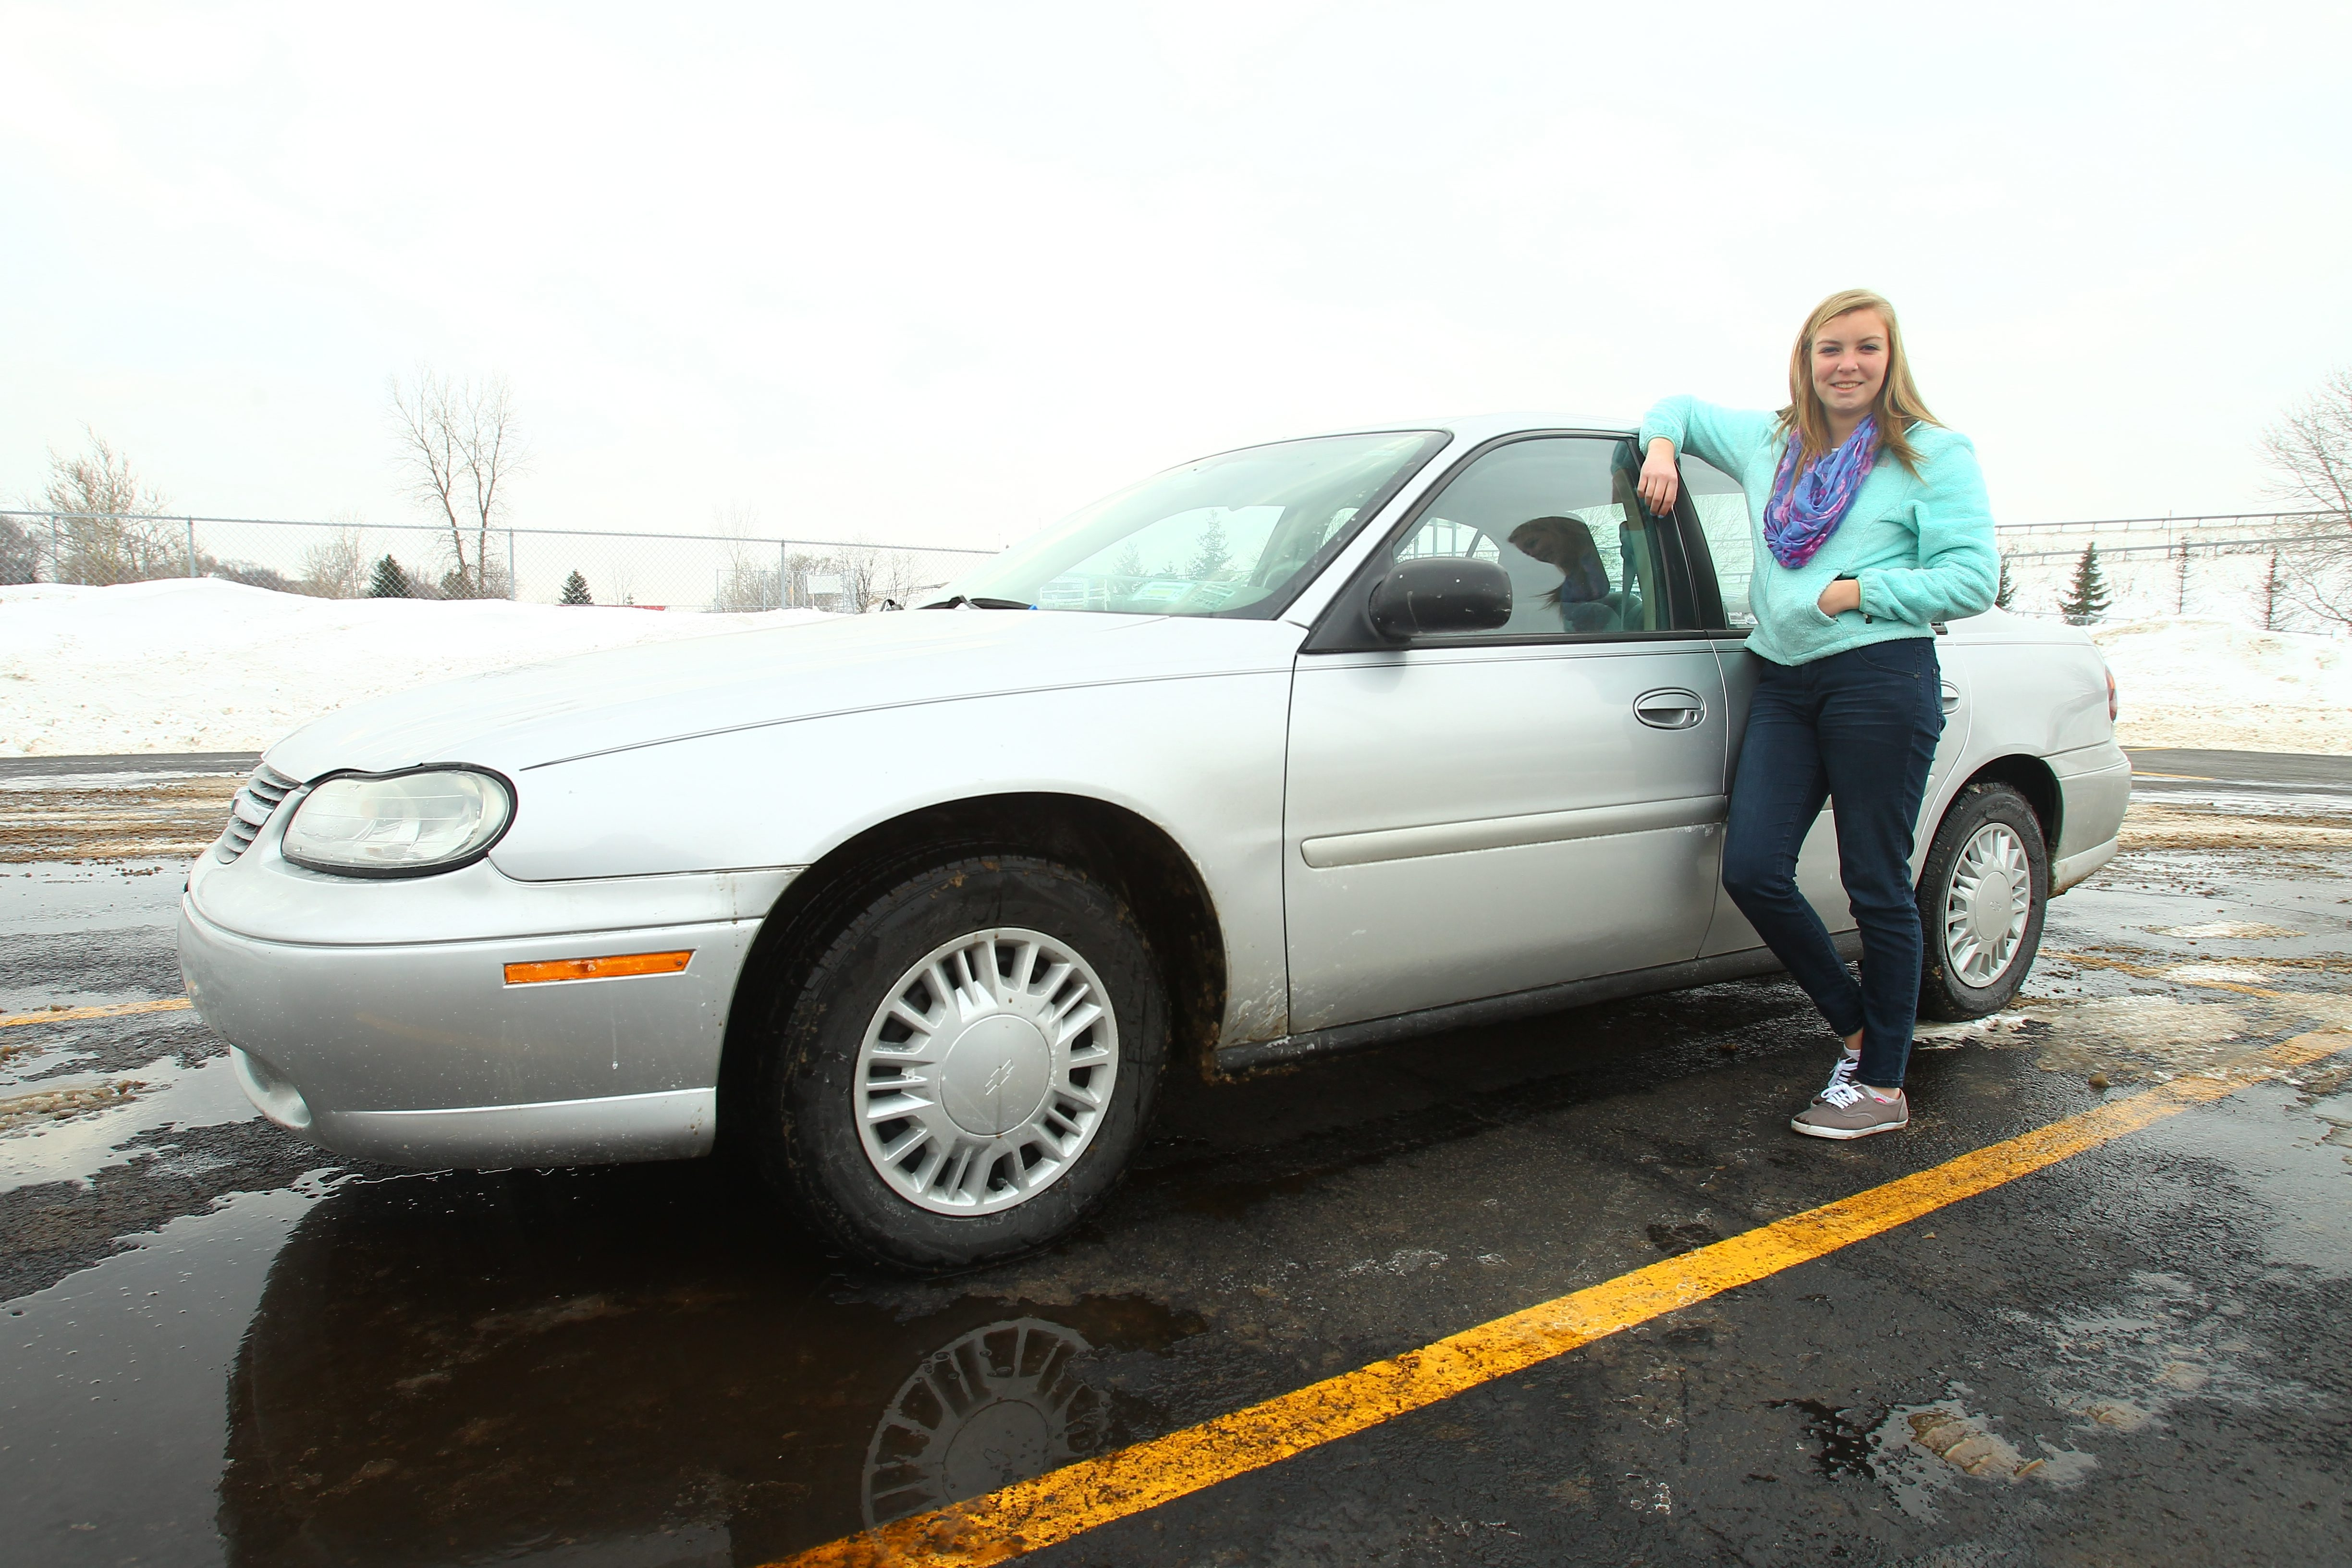 Aimee Misener, a senior at Niagara Catholic Junior Senior High School in Niagara Falls, owns a 2005 Chevrolet Malibu that was passed down from her mother.